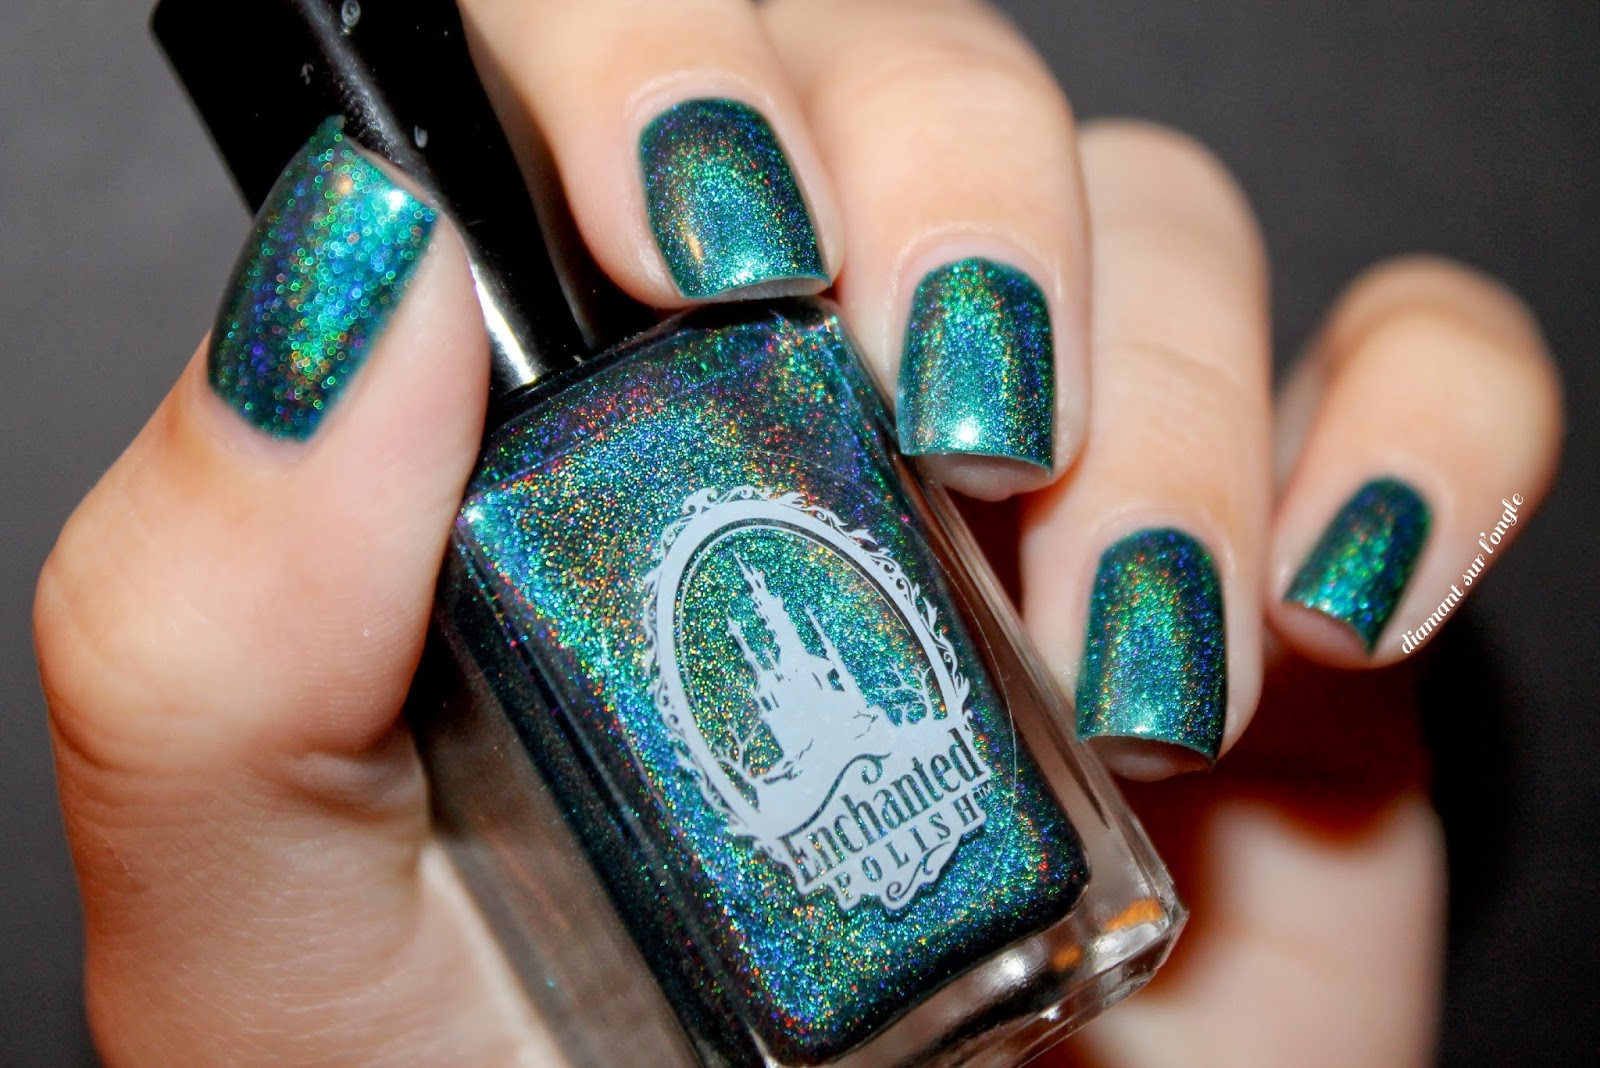 "Swatch of the nail polish ""Scintealliant"" by Enchanted Polish ft. Pshiiit"